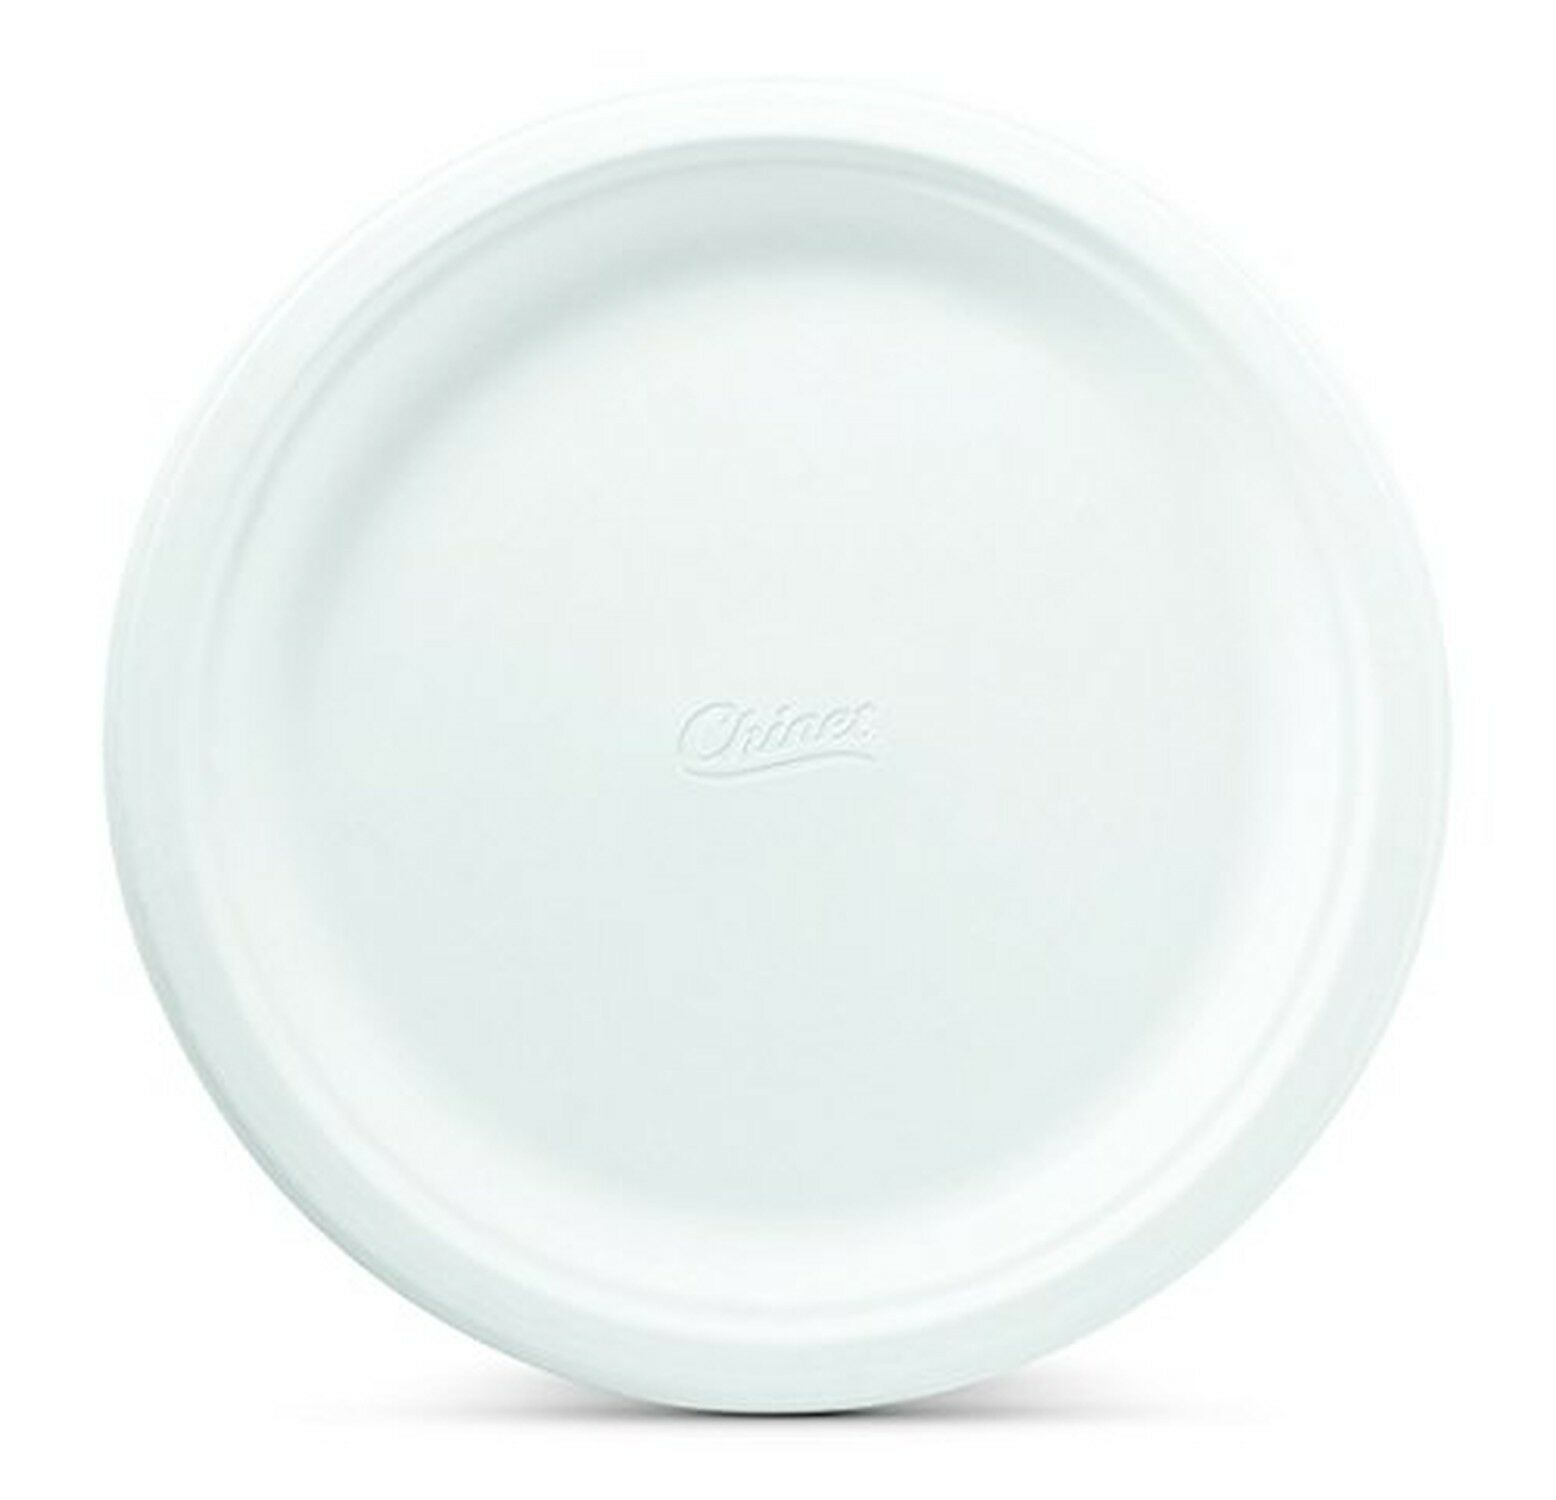 8  sc 1 st  eBay & Chinet 10 3 8 Disposable Dinner Plates Heavy Duty Paper Plates 100 ...